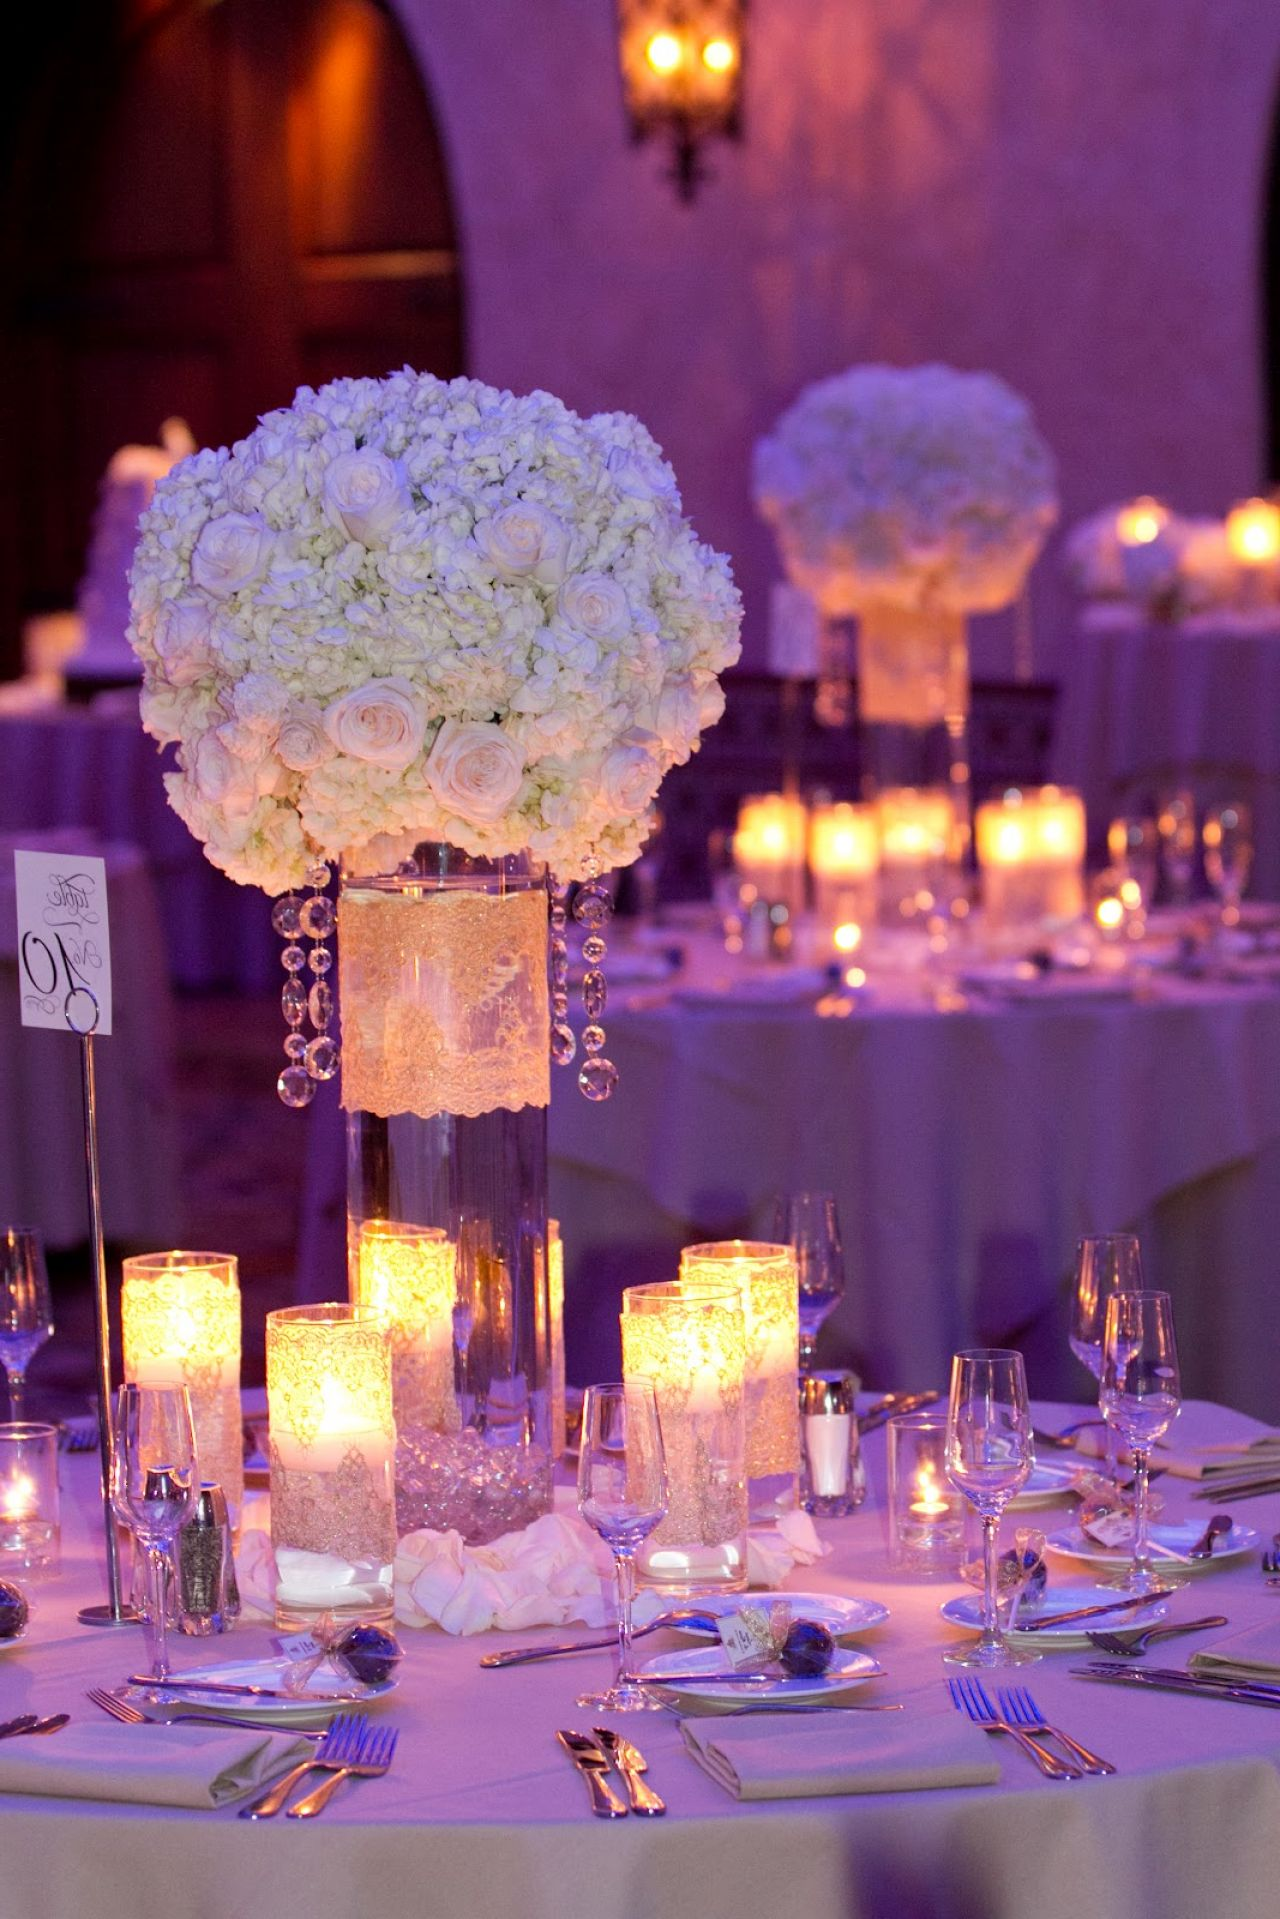 decor themes white gold with a splash of purple lighting purple and gold wedding DECOR THEMES WHITE GOLD WITH A SPLASH OF PURPLE LIGHTING